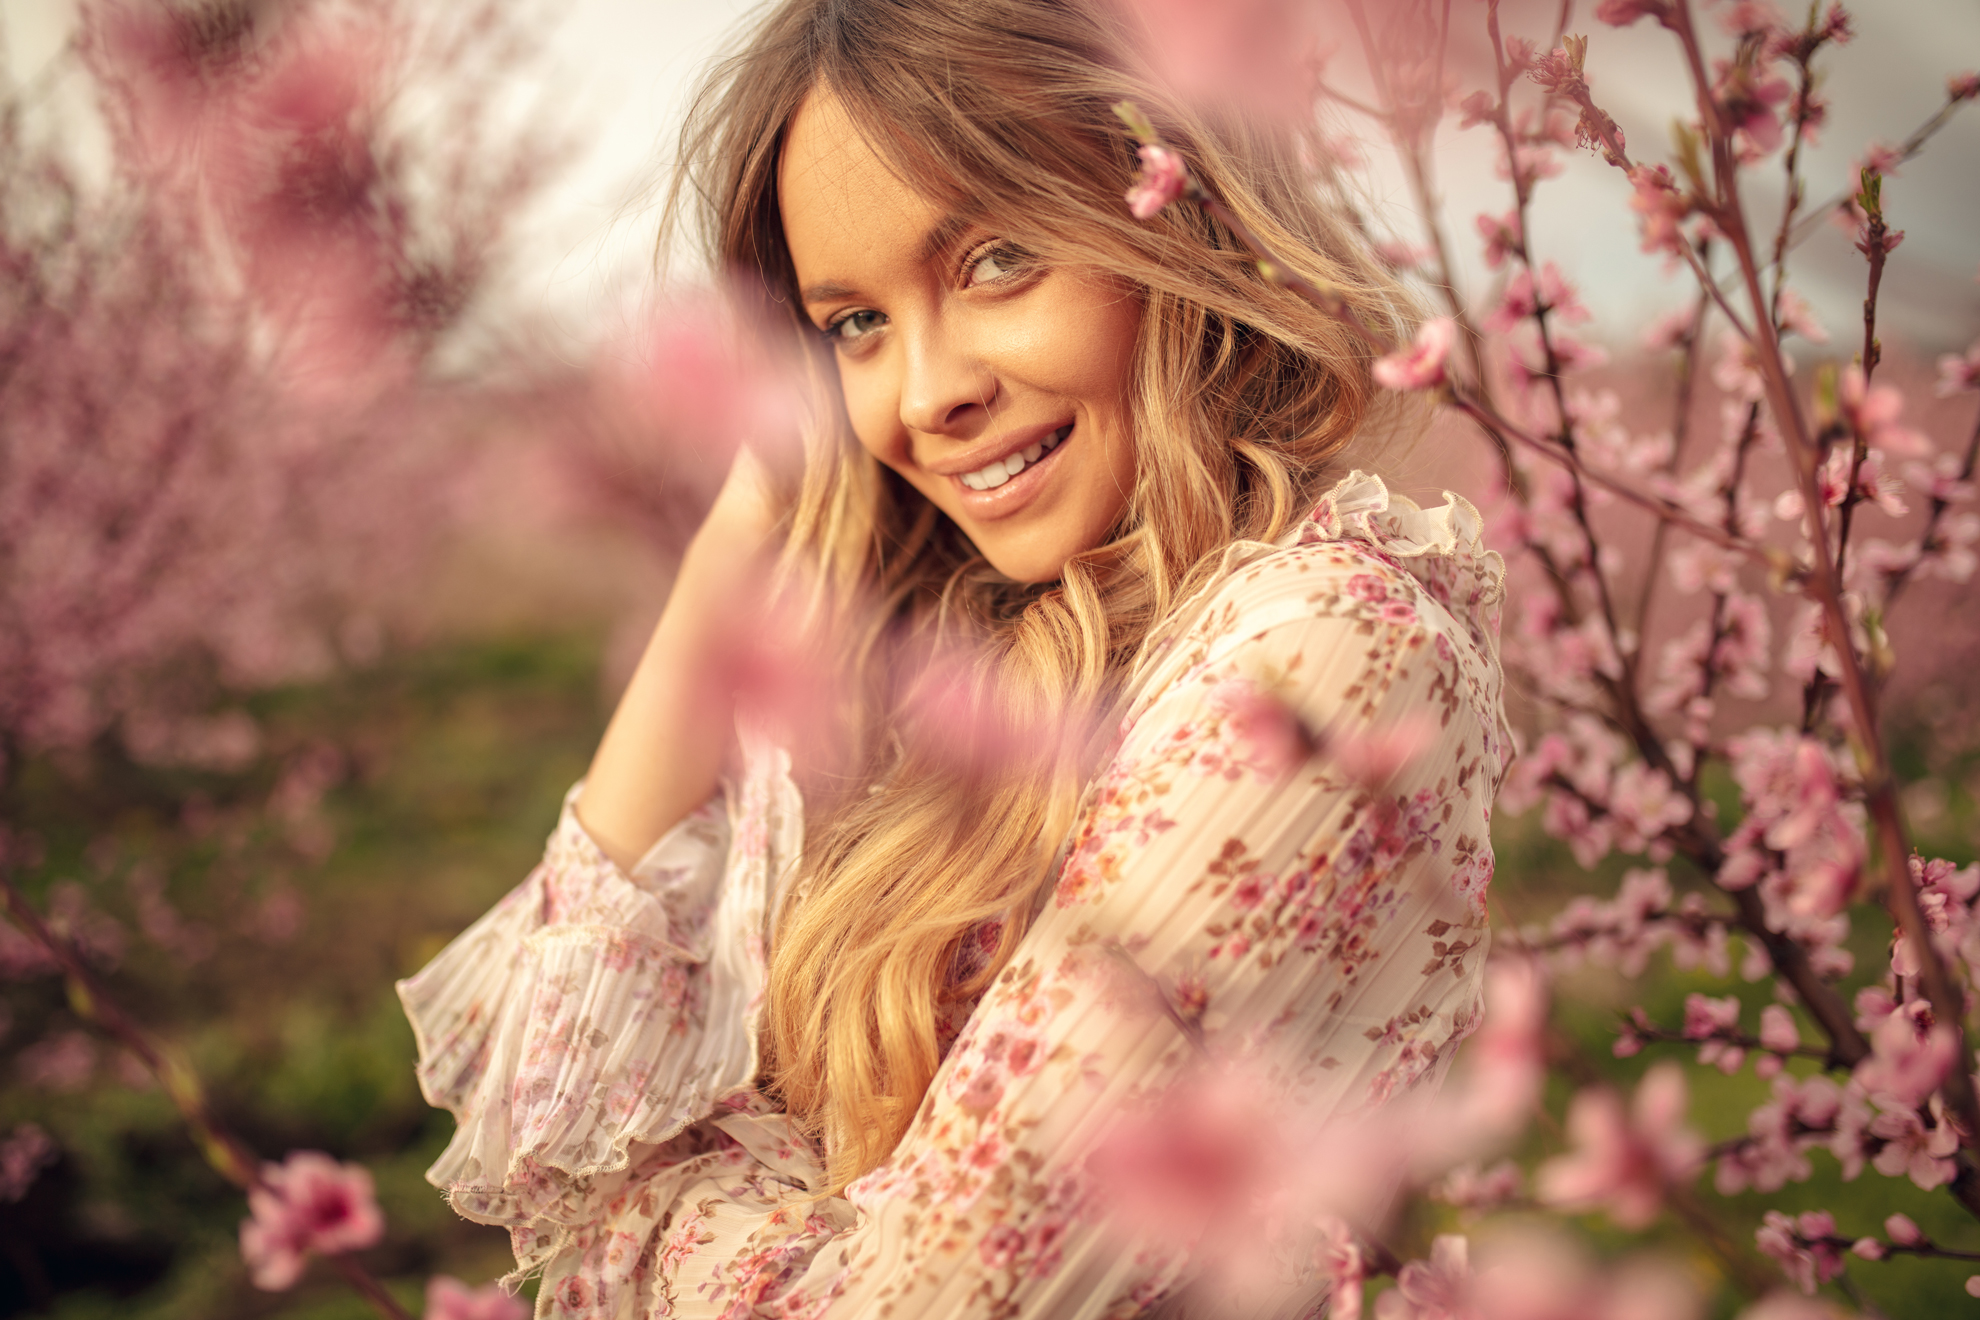 Young woman under Cherry Blossom